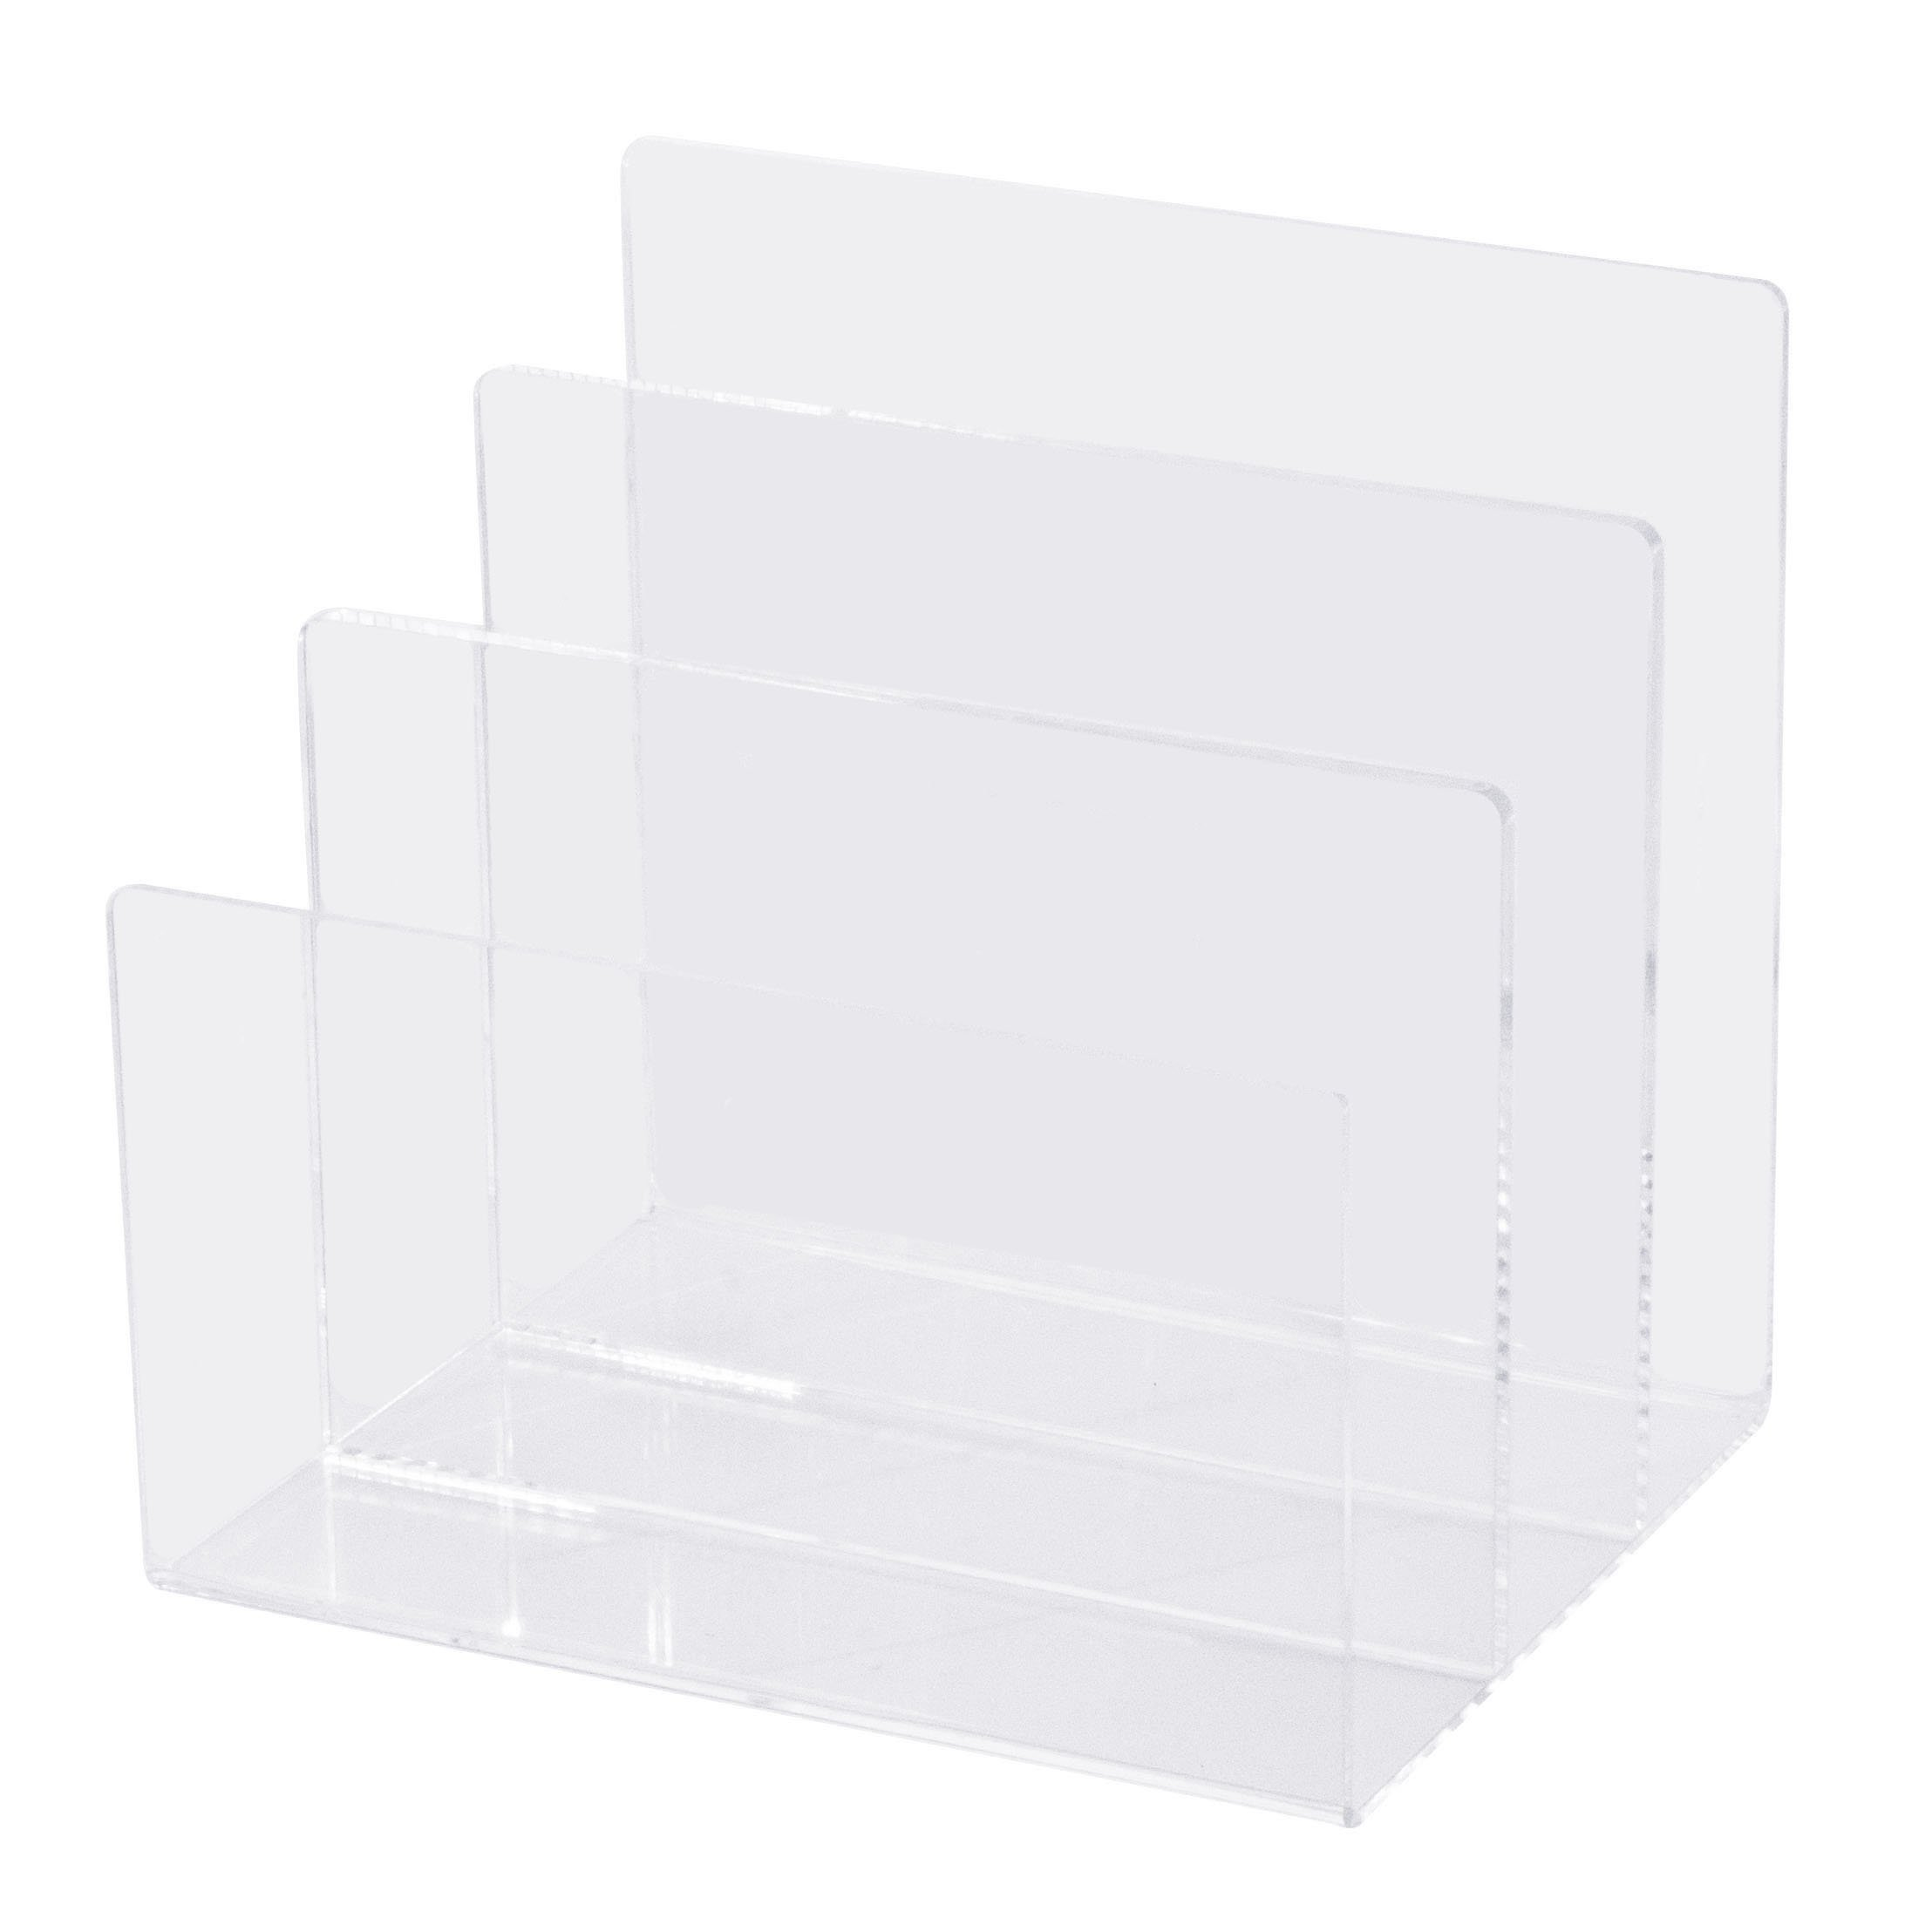 Combination of Life 3 Sections Acrylic Letter Mail Document Organizer Desktop File Sorter Makeup Palette Organizer 8''Wx 6.6''Dx7.5''H Clear